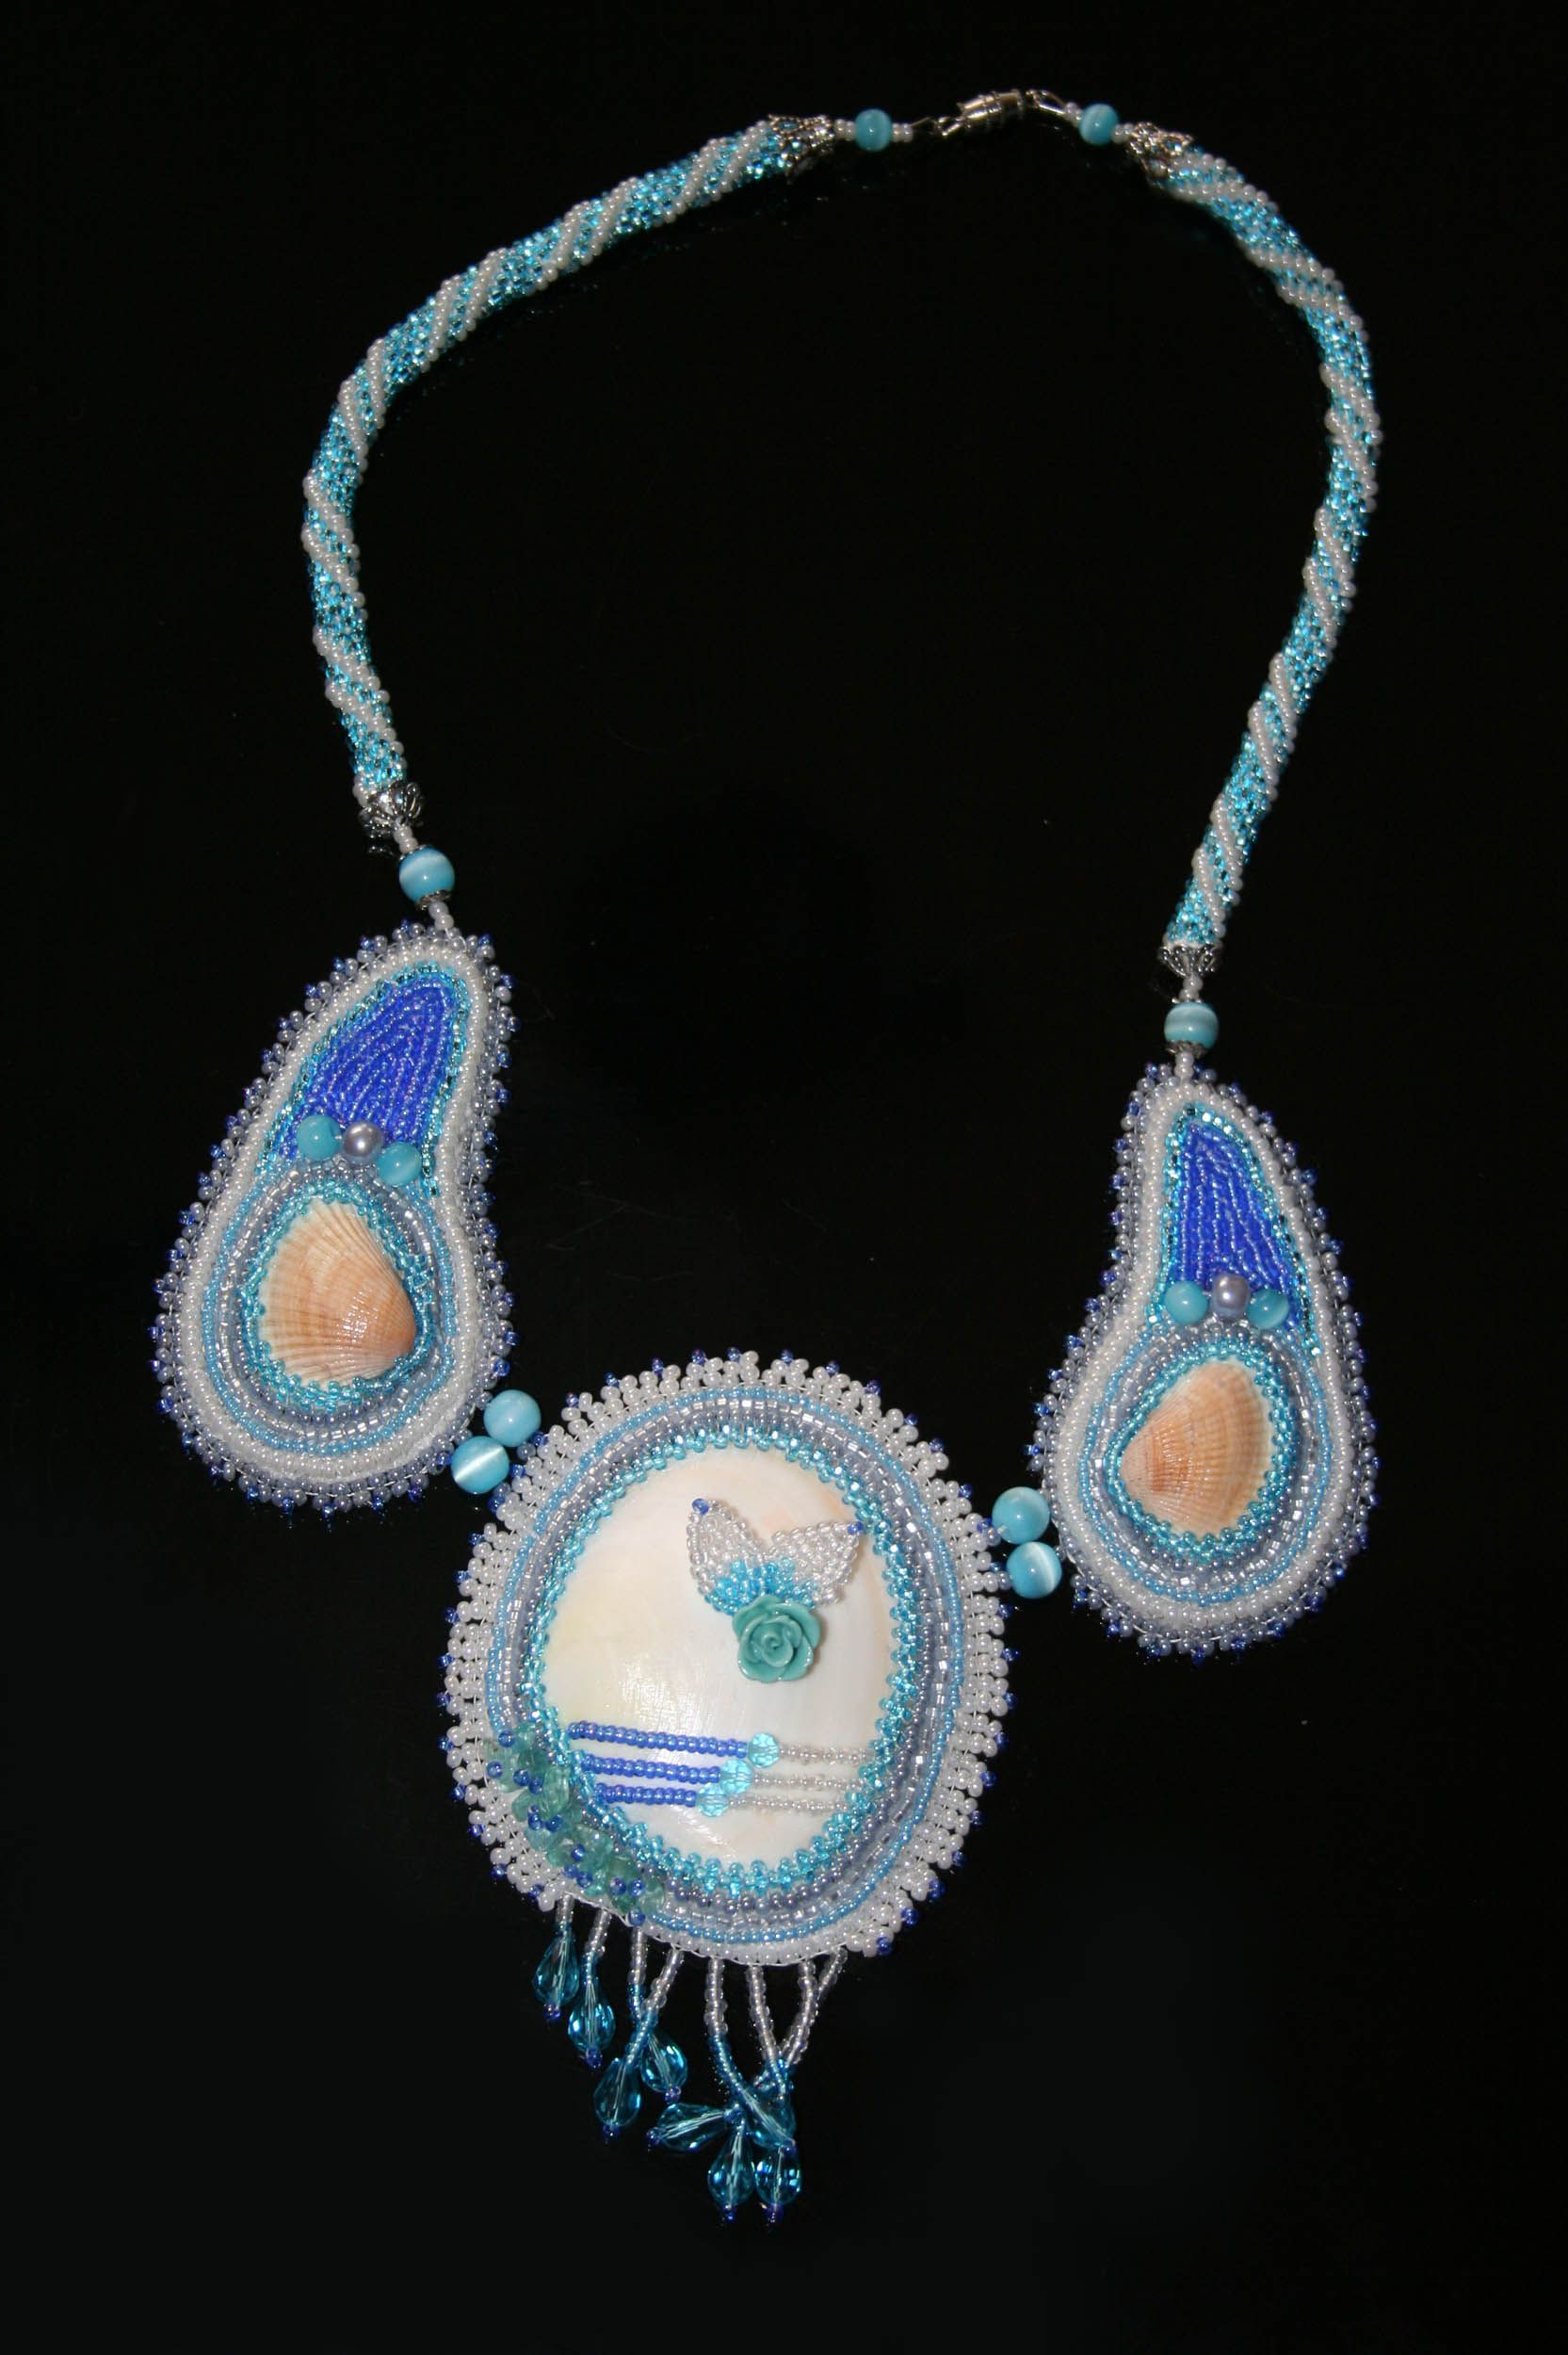 Sea Necklace - techniques: peyote and herringbone stitch, square rope, beading around cabochon, bead embroidery. Materials: seed beads 11/0, sea shells, catseye, Swarovski crystals, plastic rose and round beads